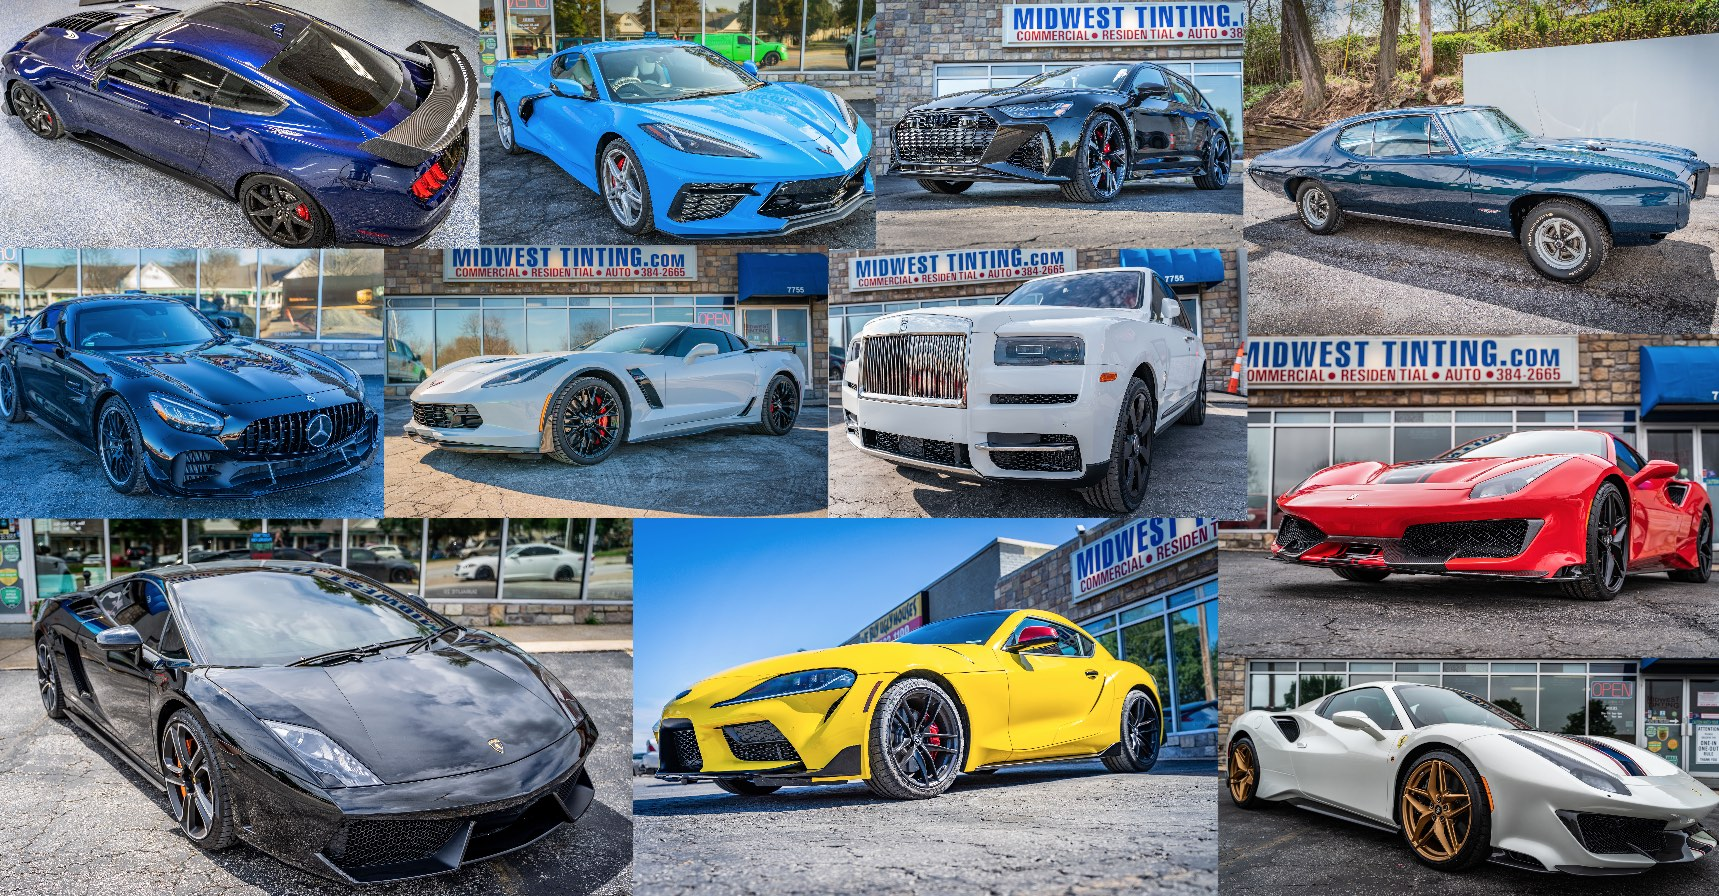 Check Out Midwest Tinting's The Top 12 Posts of 2020 in Kansas City